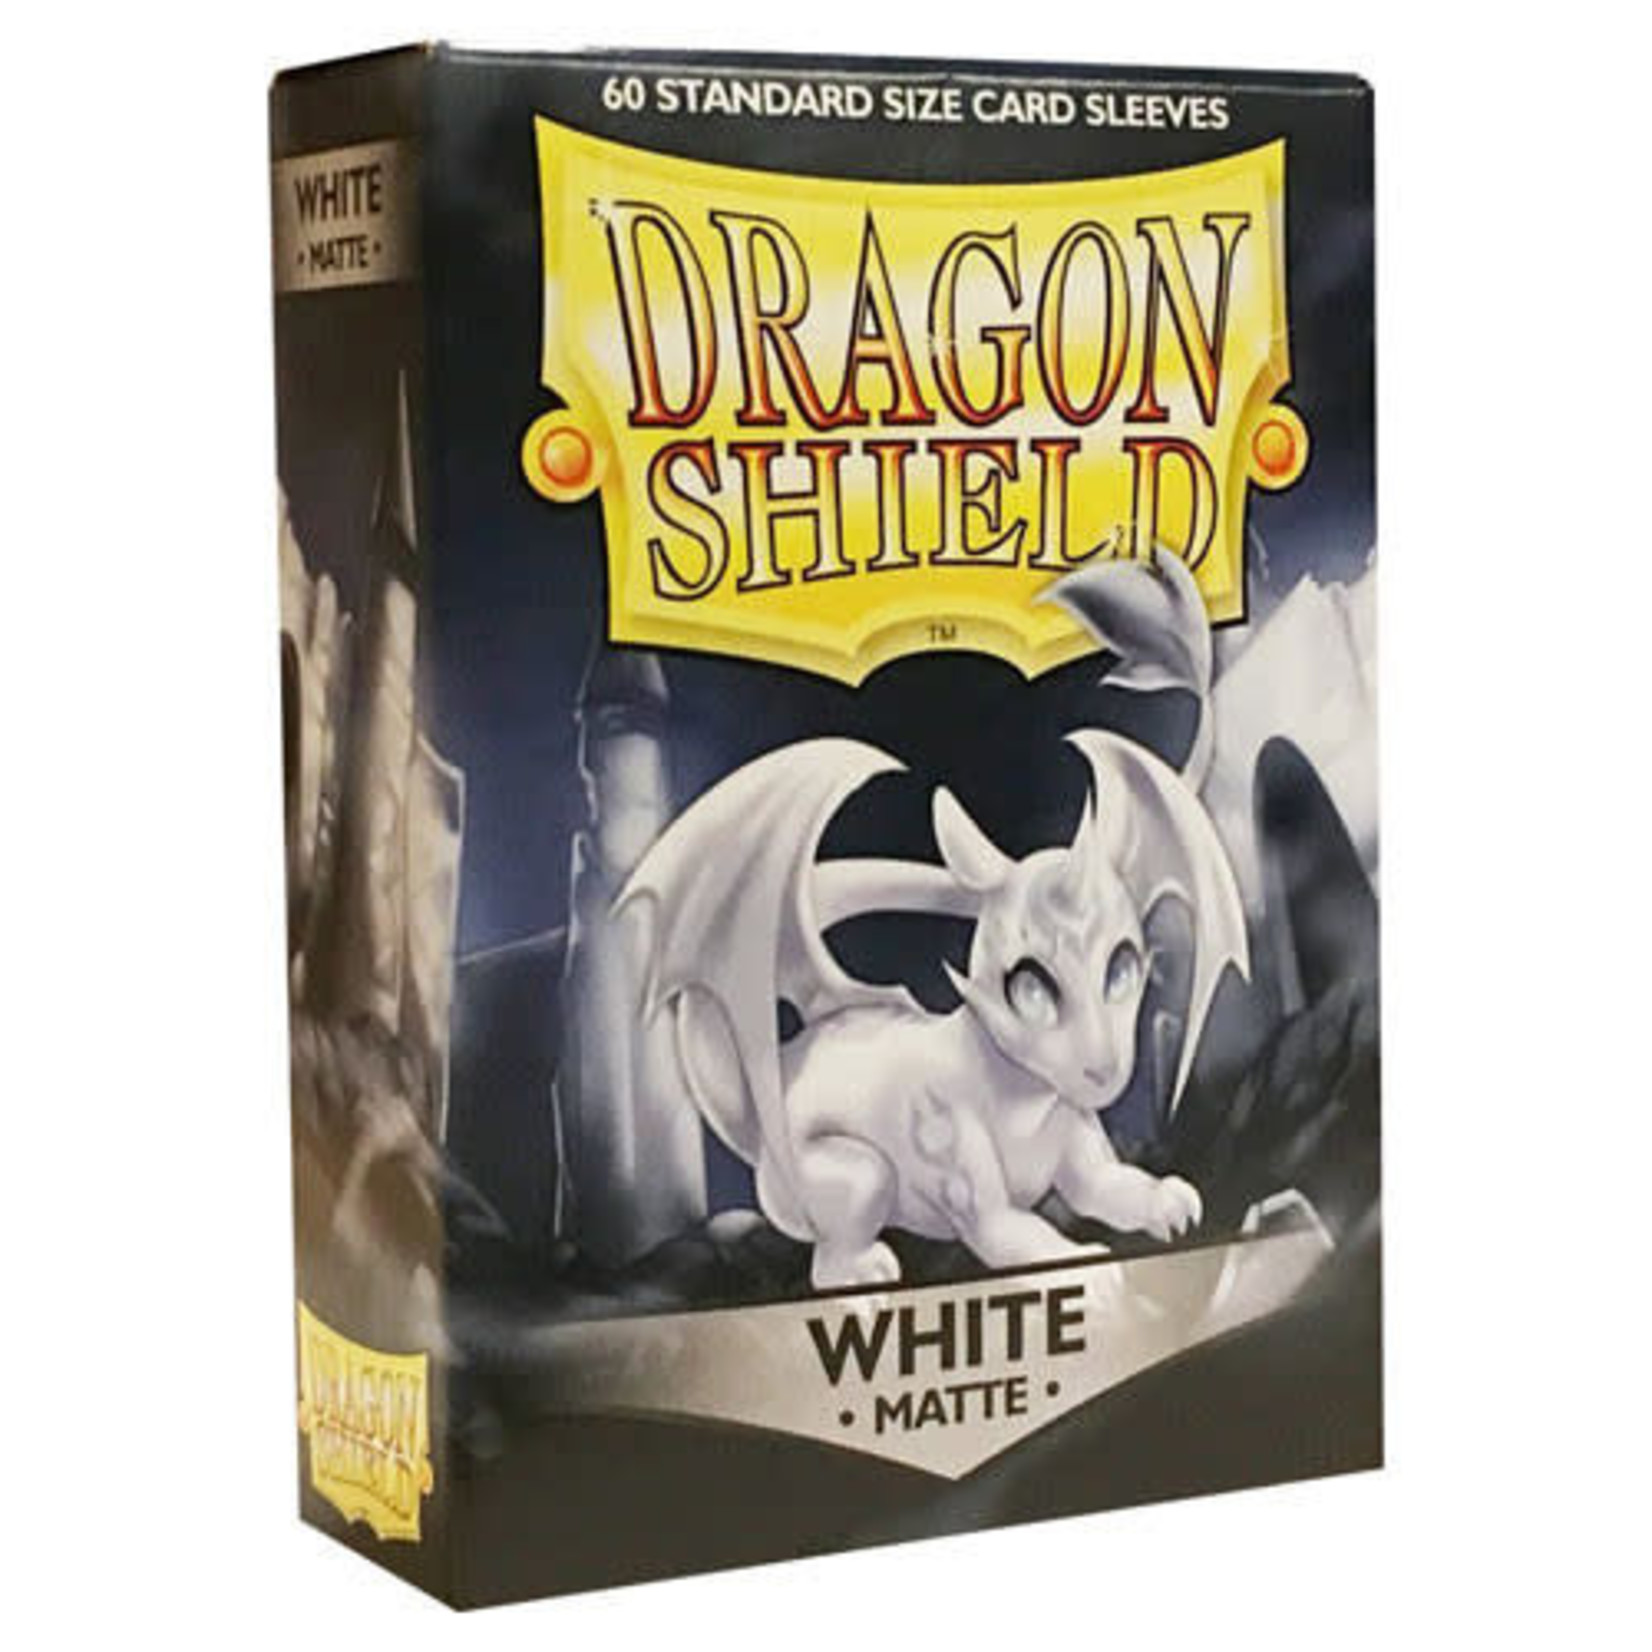 Dragon Shield Matte White (60 count) Small